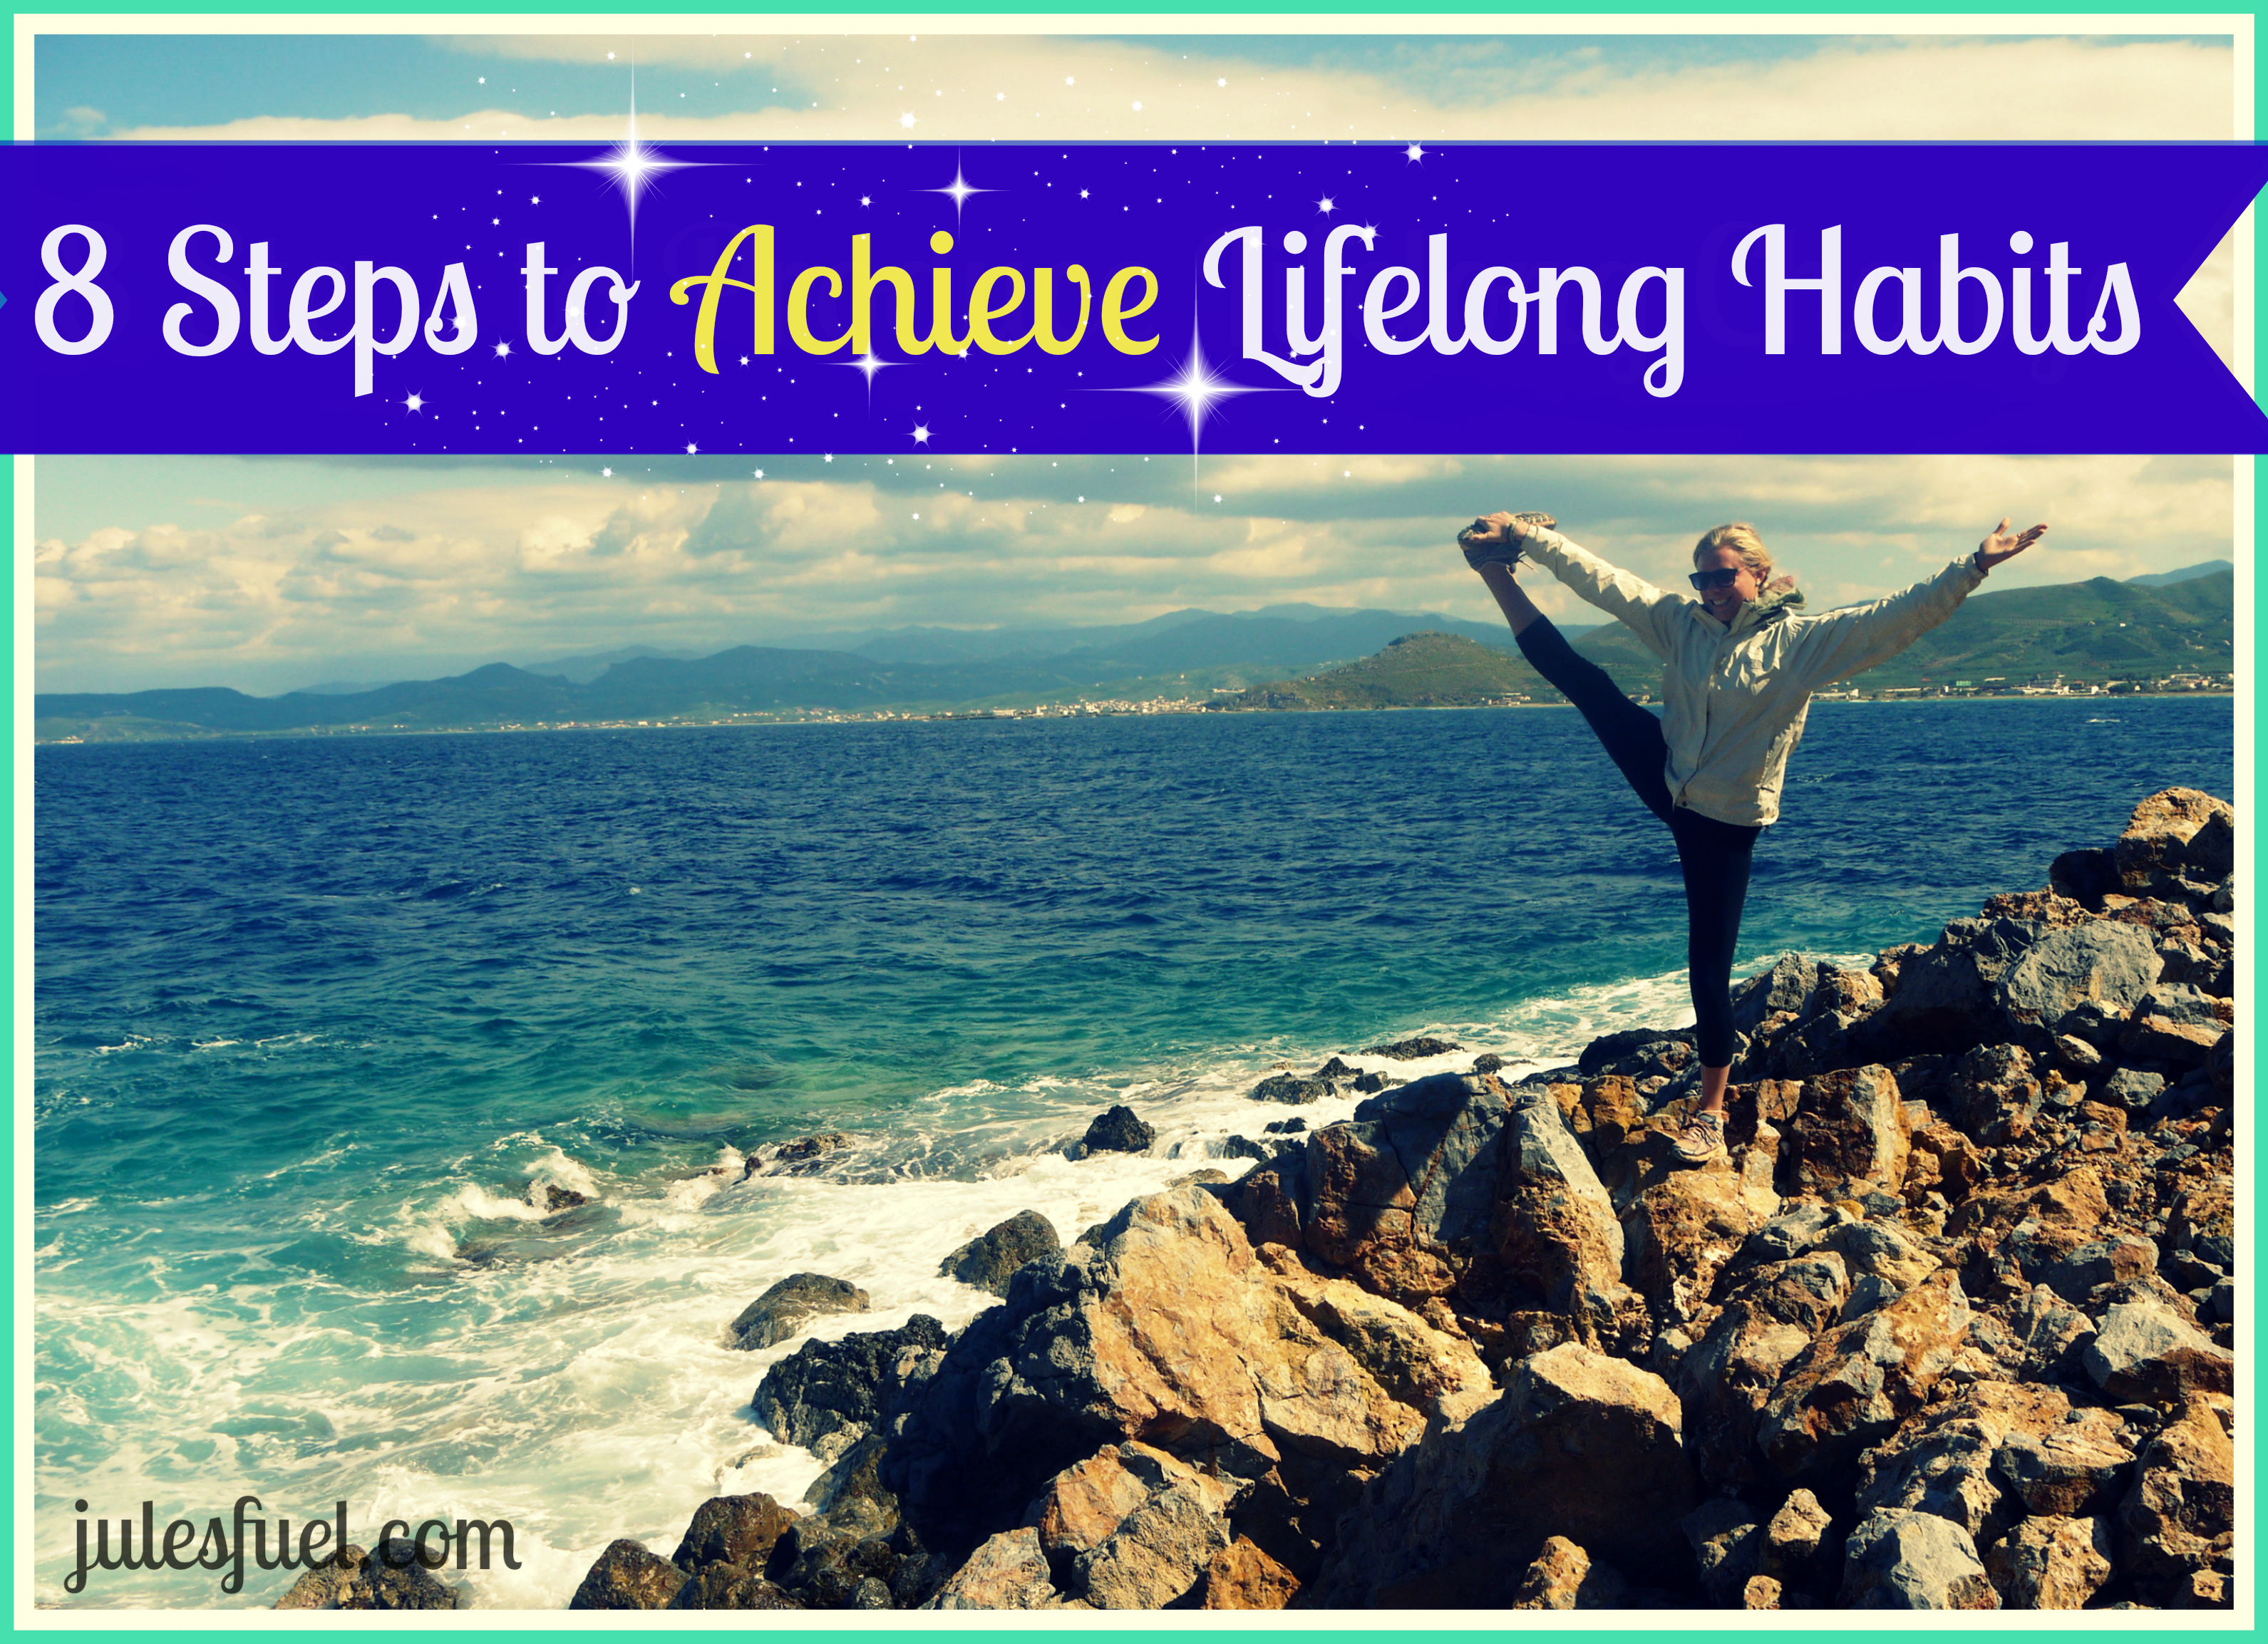 8 steps to achieve lifelong habits